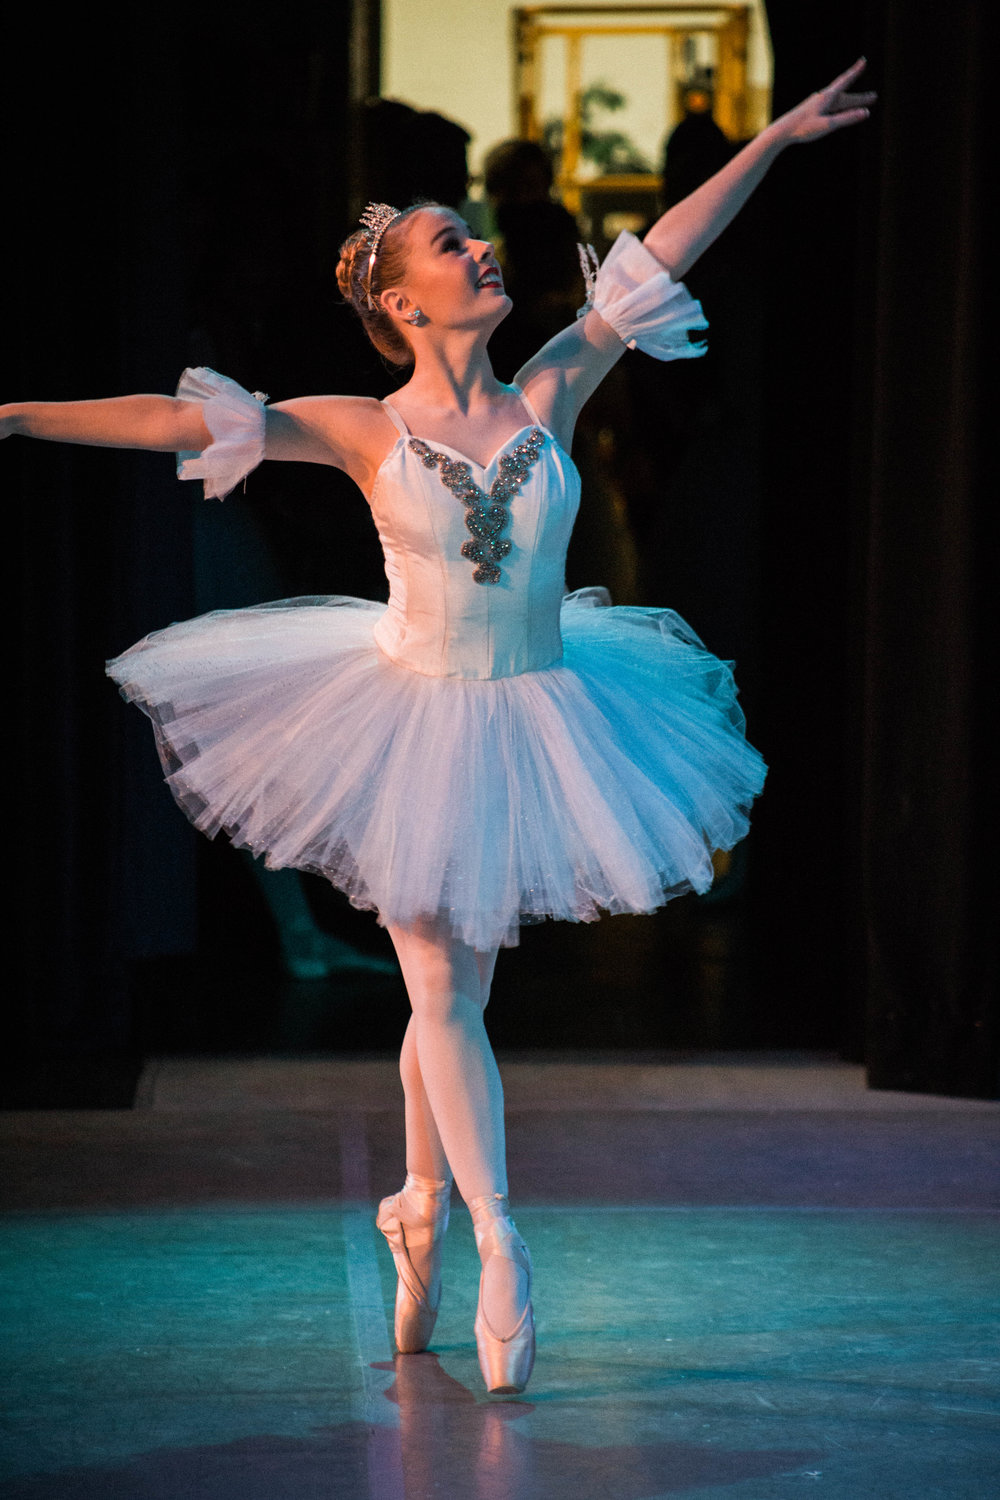 nutcracker17 (5 of 53).jpg